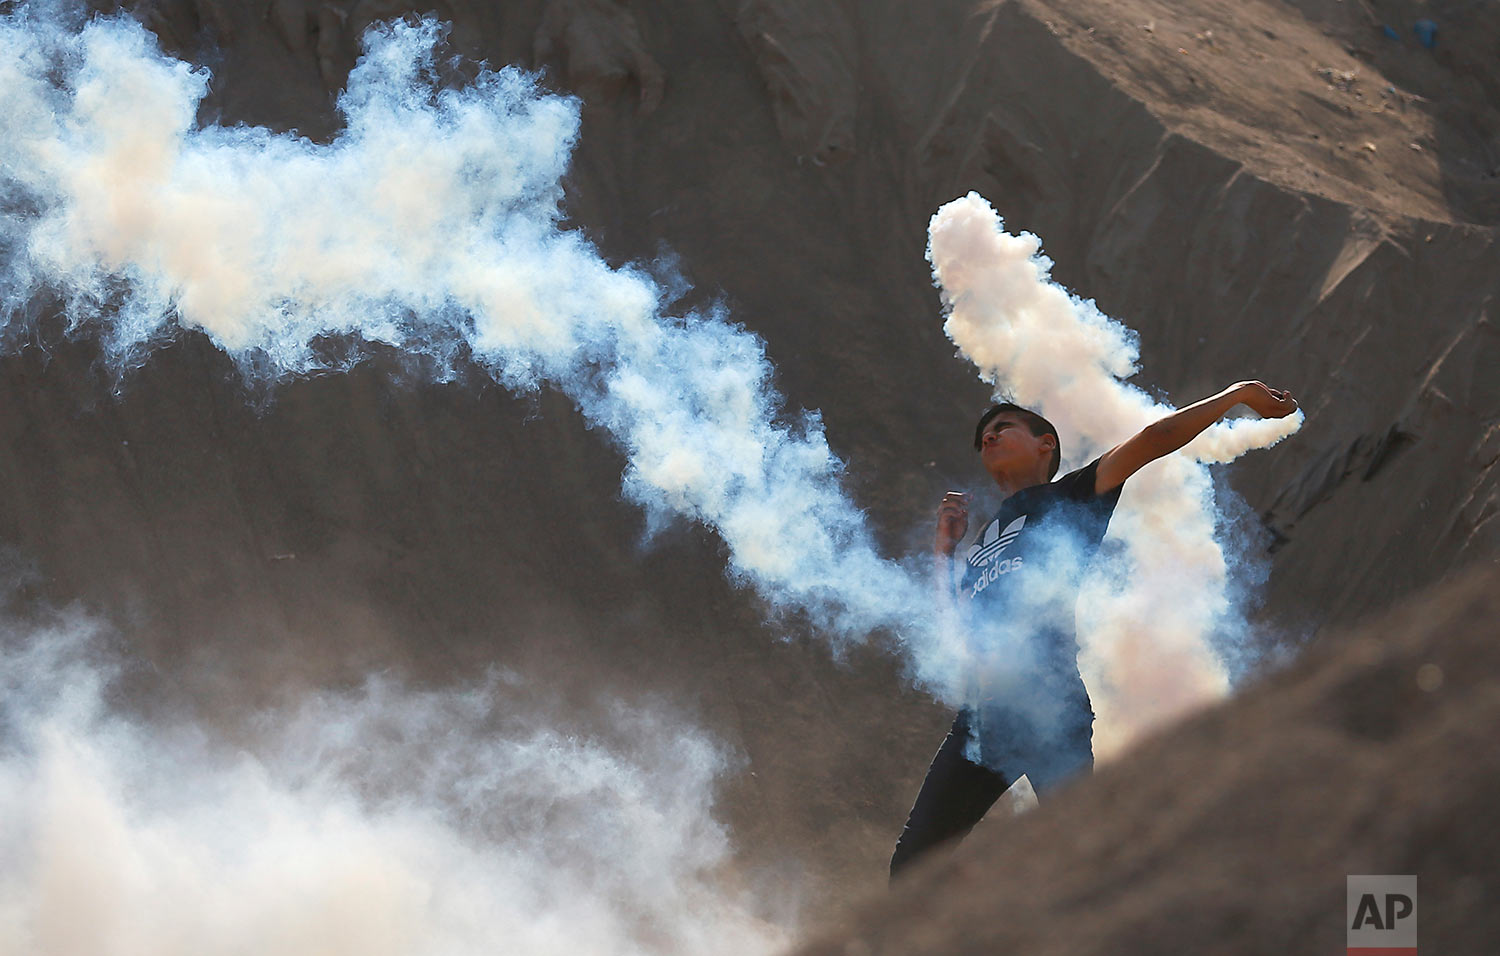 A Palestinian protester throws a teargas canister fired by Israeli soldiers back during clashes on the Israeli border with Gaza, Friday, July 21, 2017. (AP Photo/Khalil Hamra)